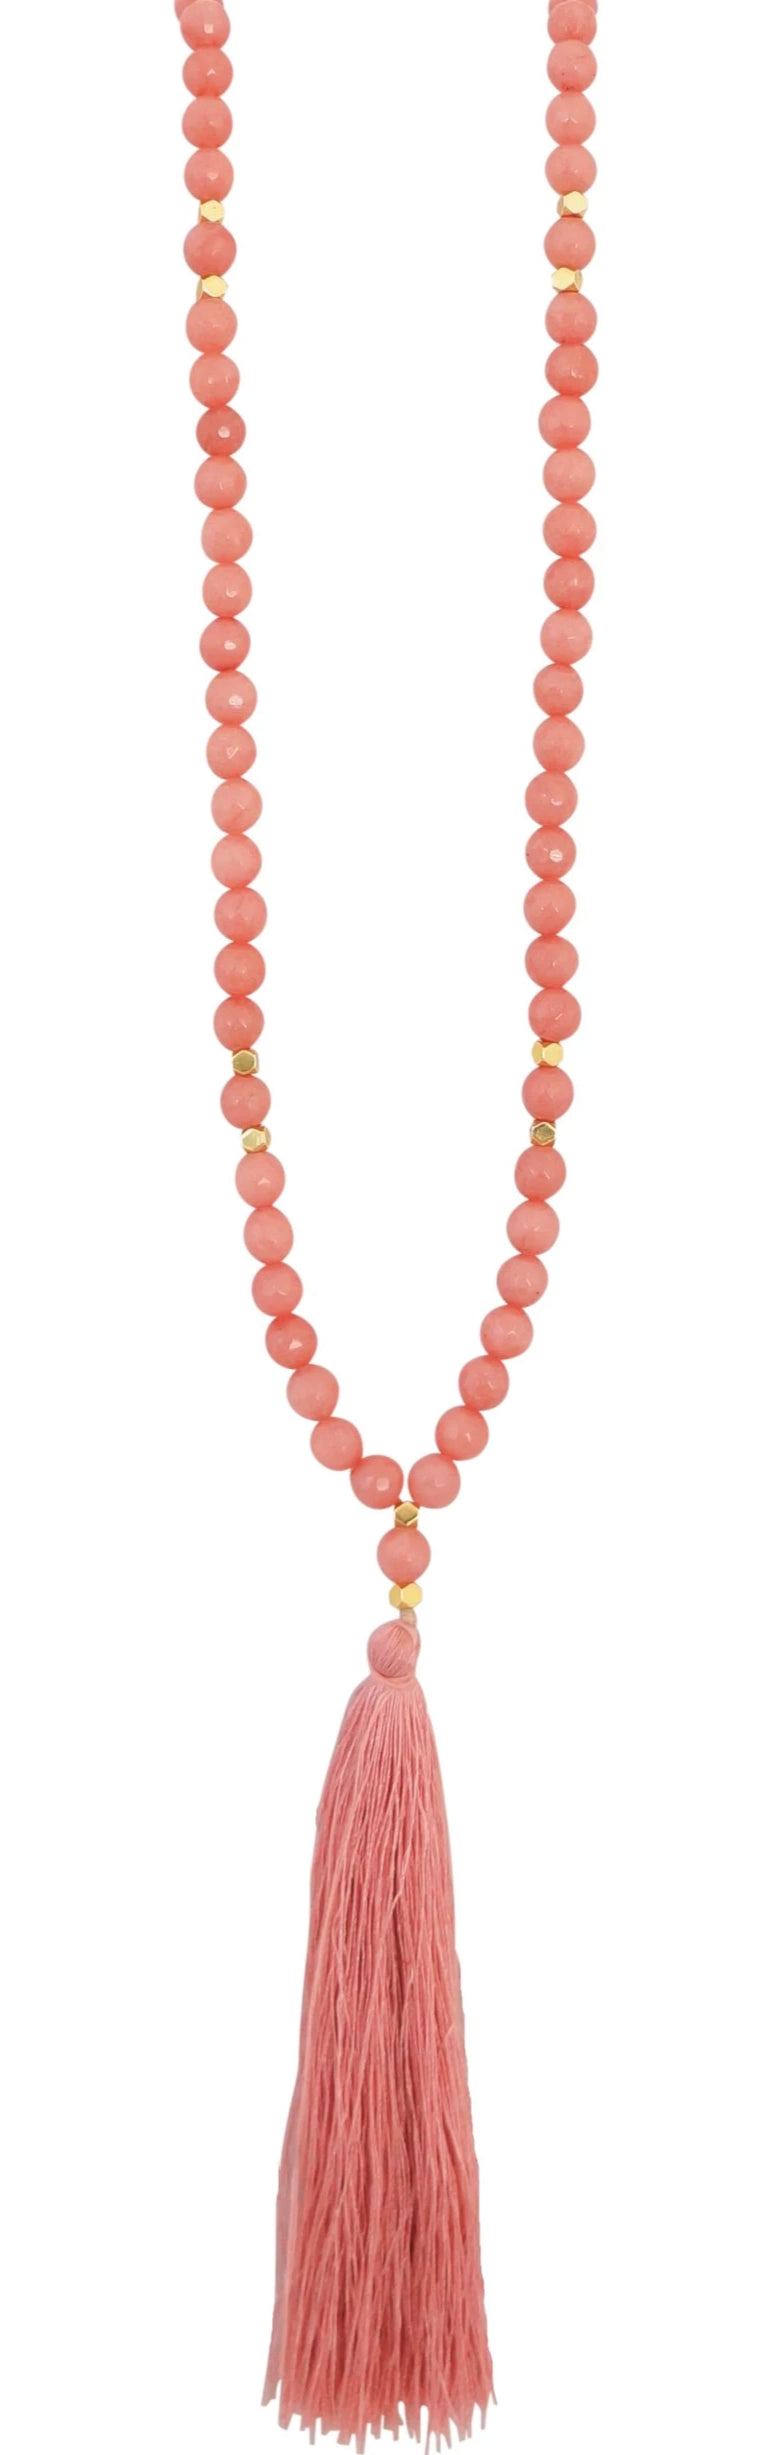 Joy Mala - Carolyn Hearn Designs